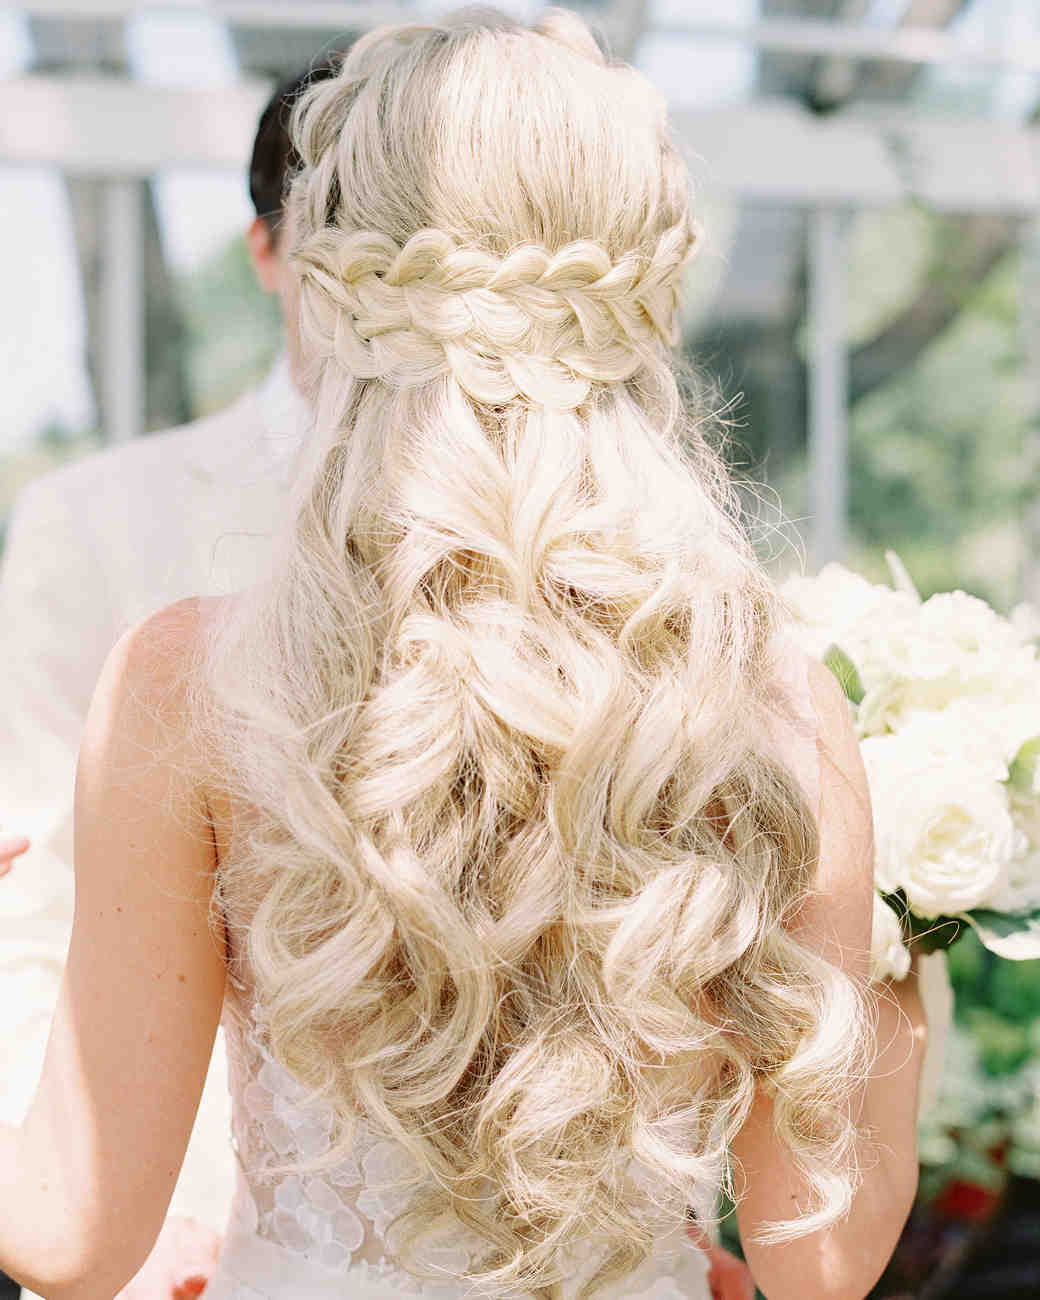 Wedding Hairstyles Guests Long Hair: 28 Half-Up, Half-Down Wedding Hairstyles We Love